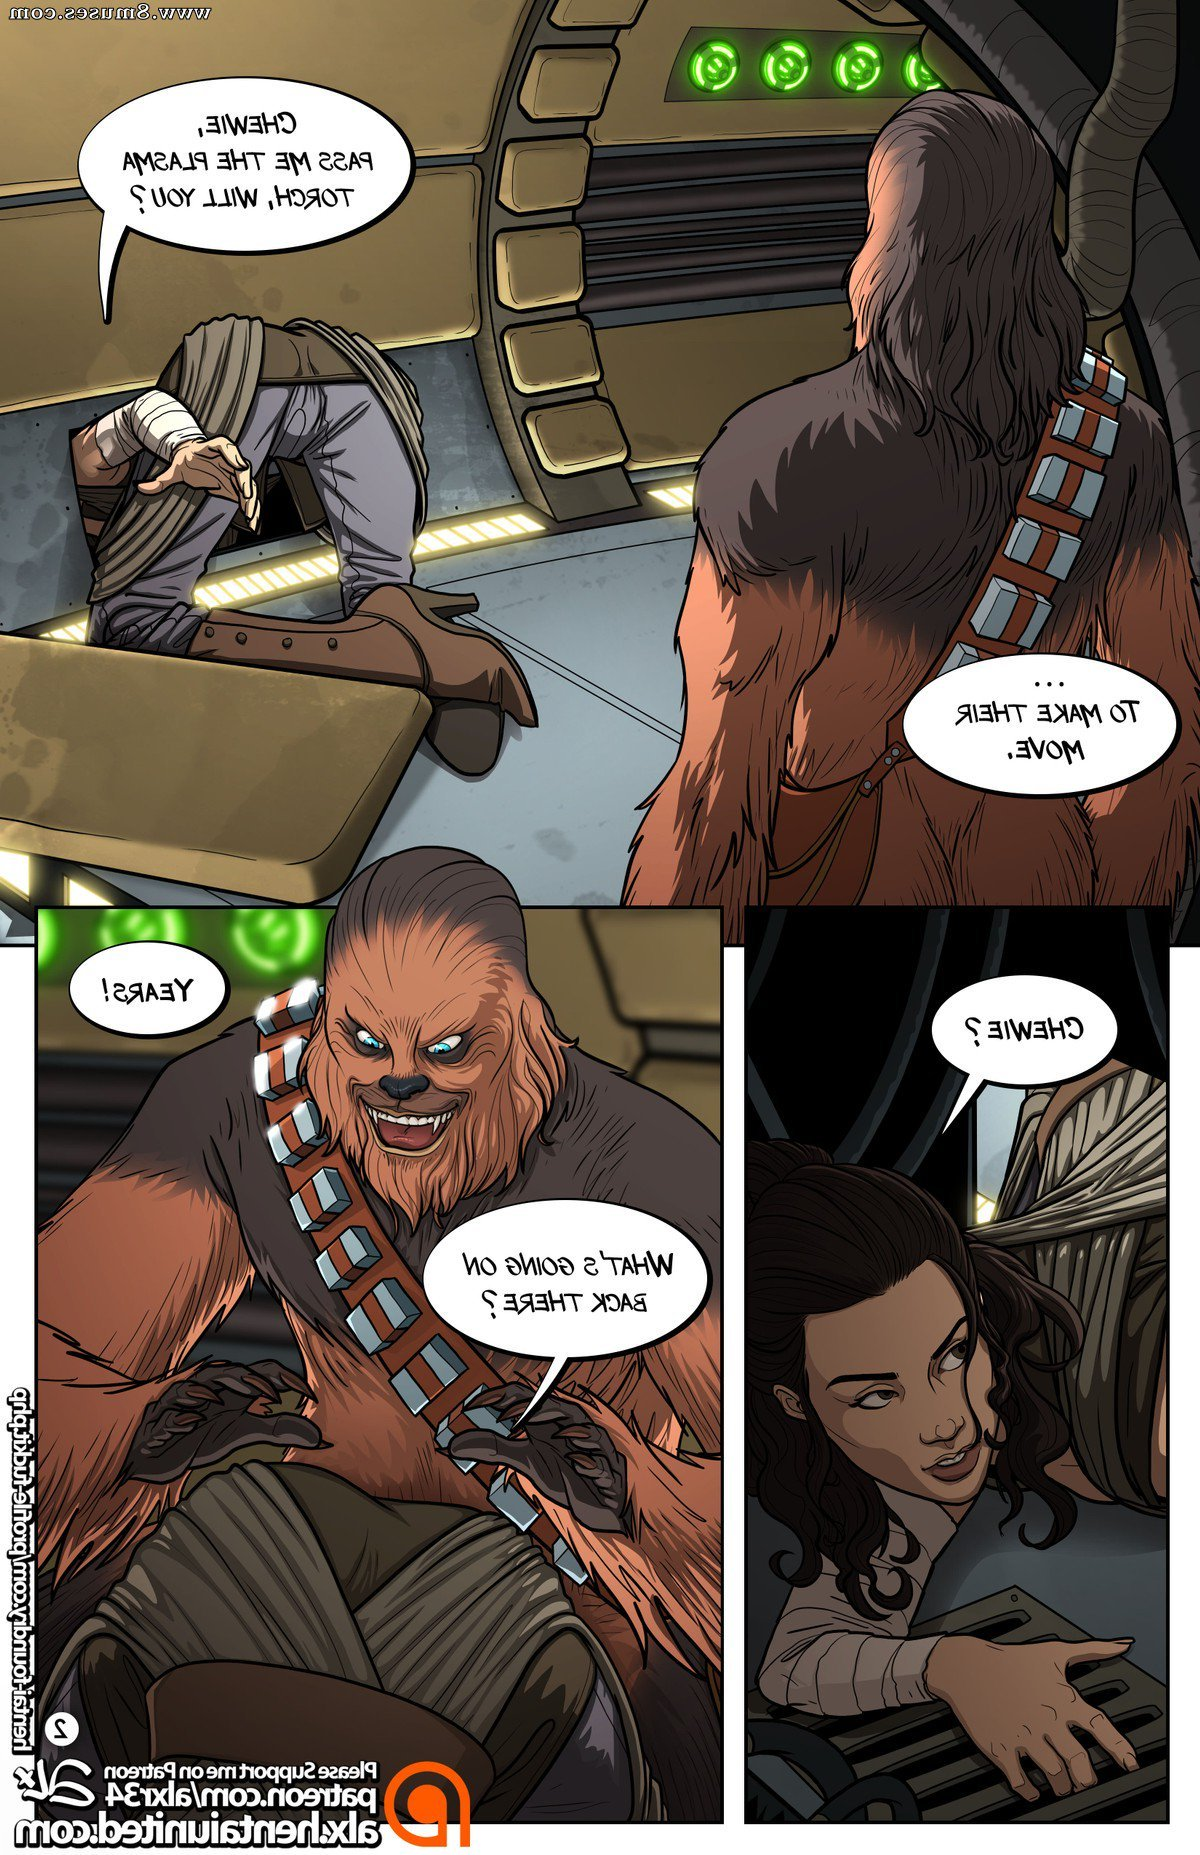 Fuckit-Alx-Comics/A-Complete-Guide-to-Wookie-Sex/Issue-1 A_Complete_Guide_to_Wookie_Sex_-_Issue_1_3.jpg